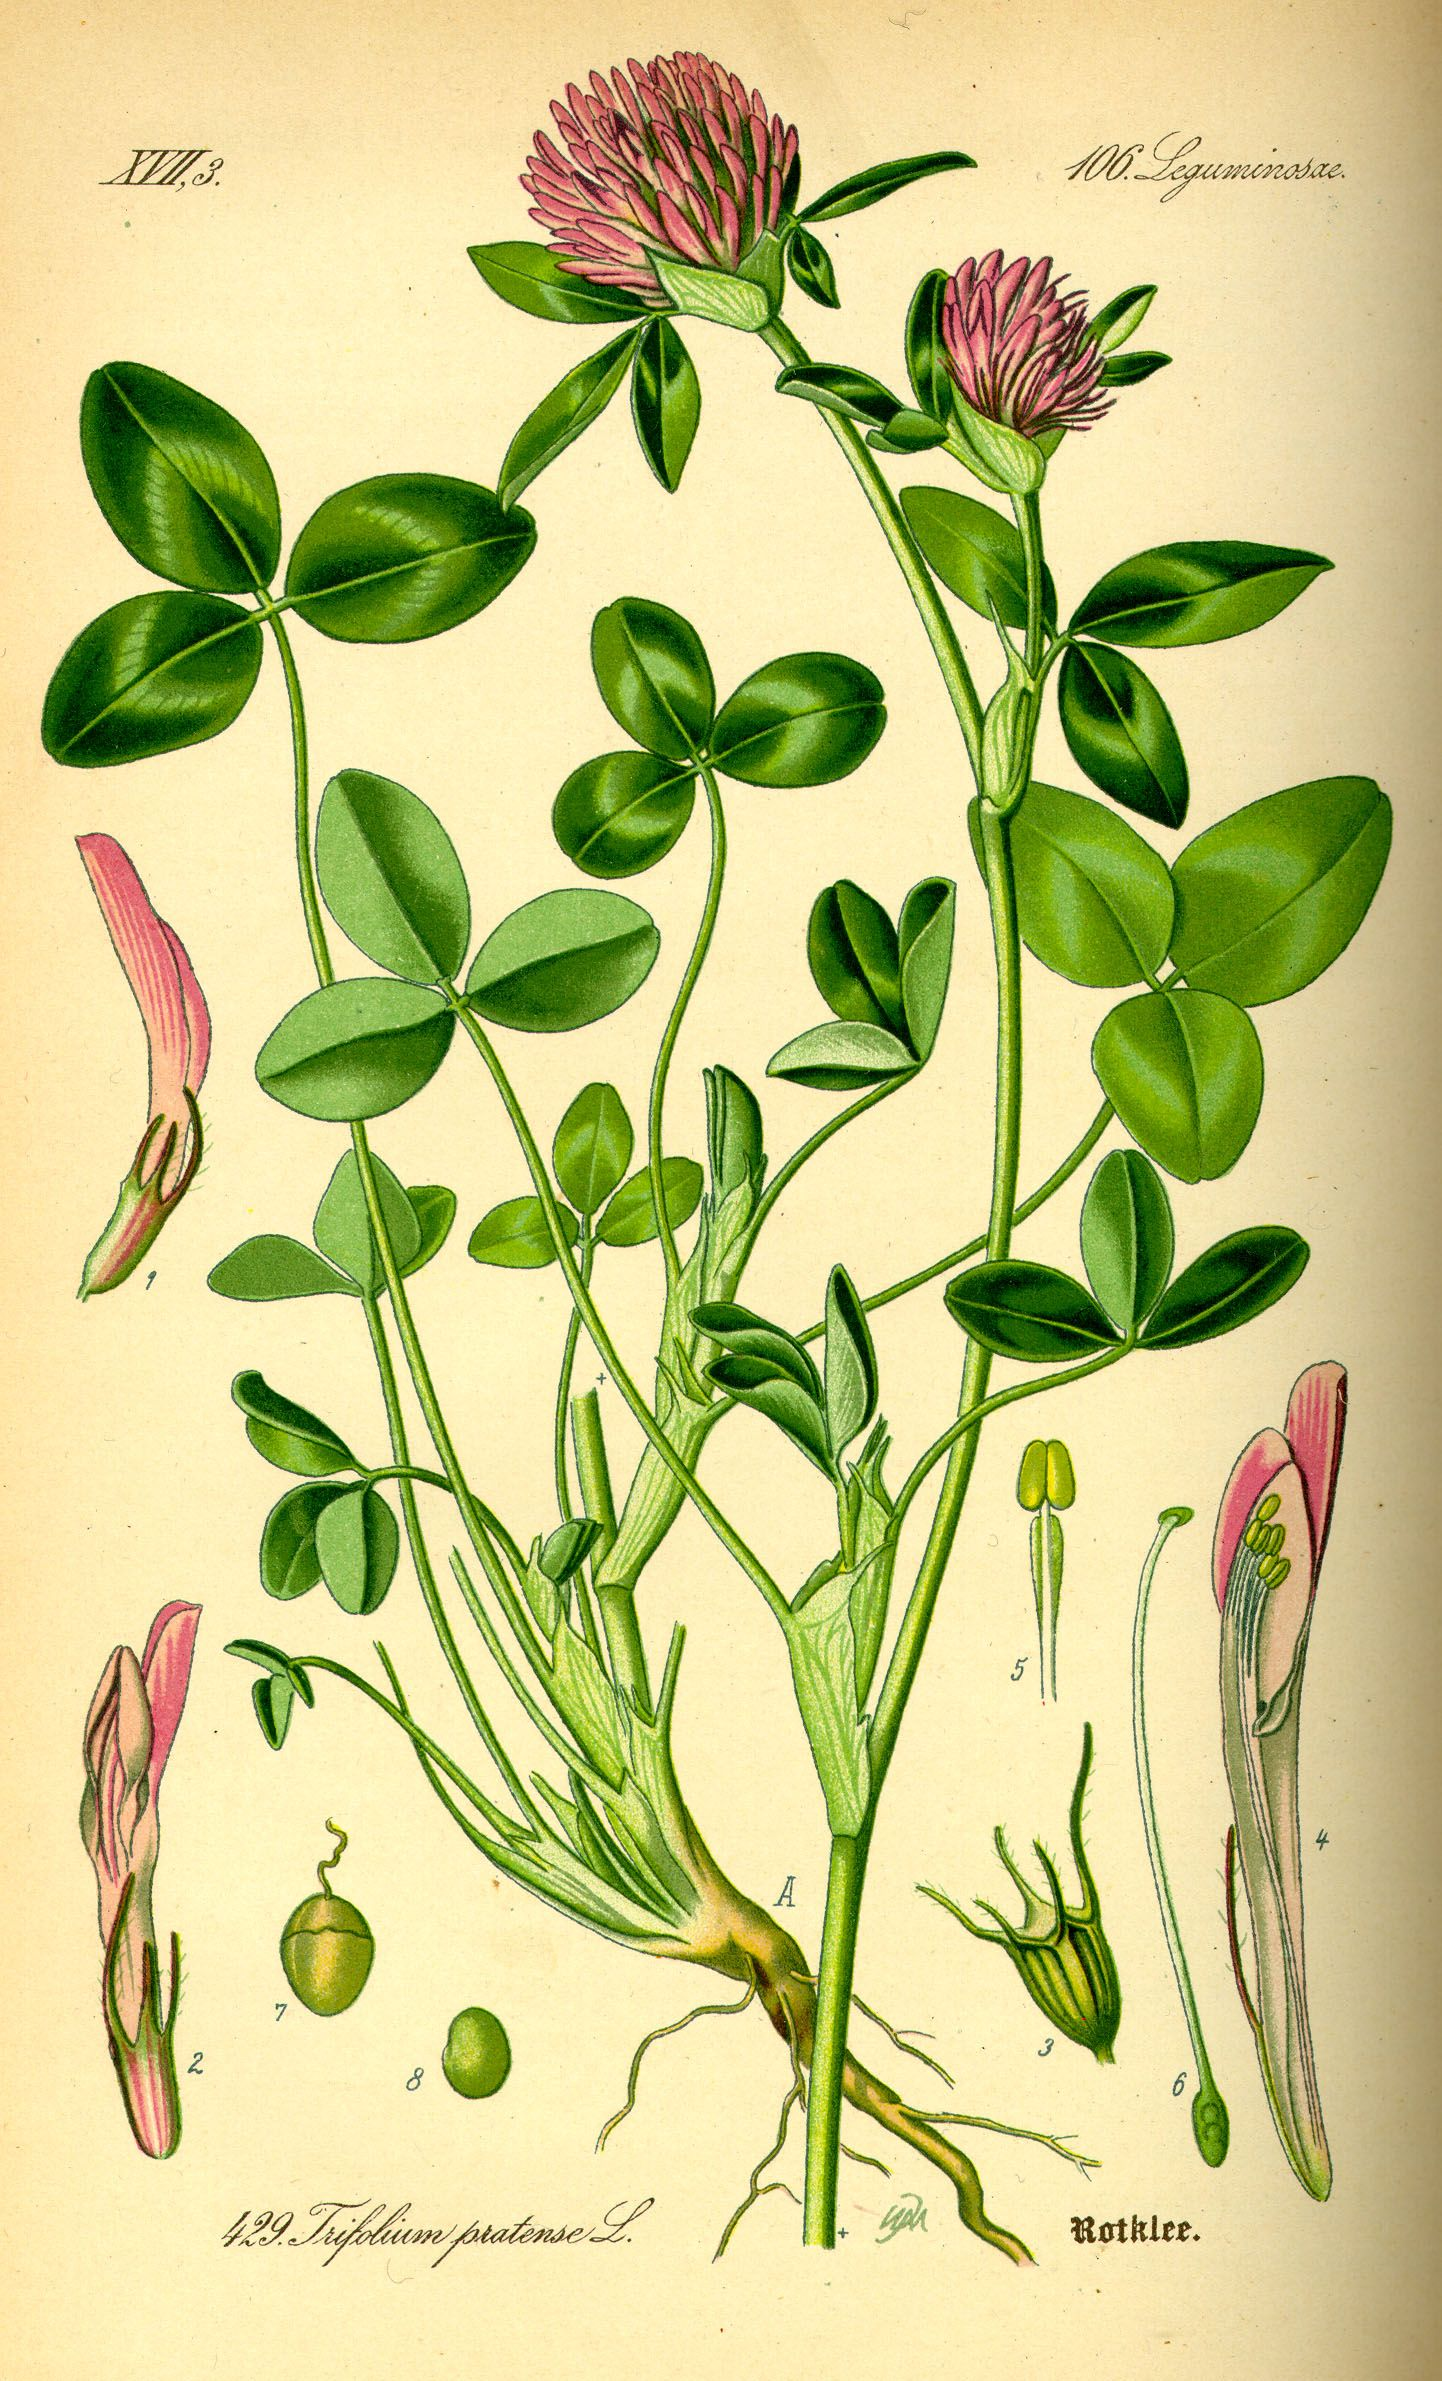 Clover pink: medicinal properties and methods of harvesting a useful plant